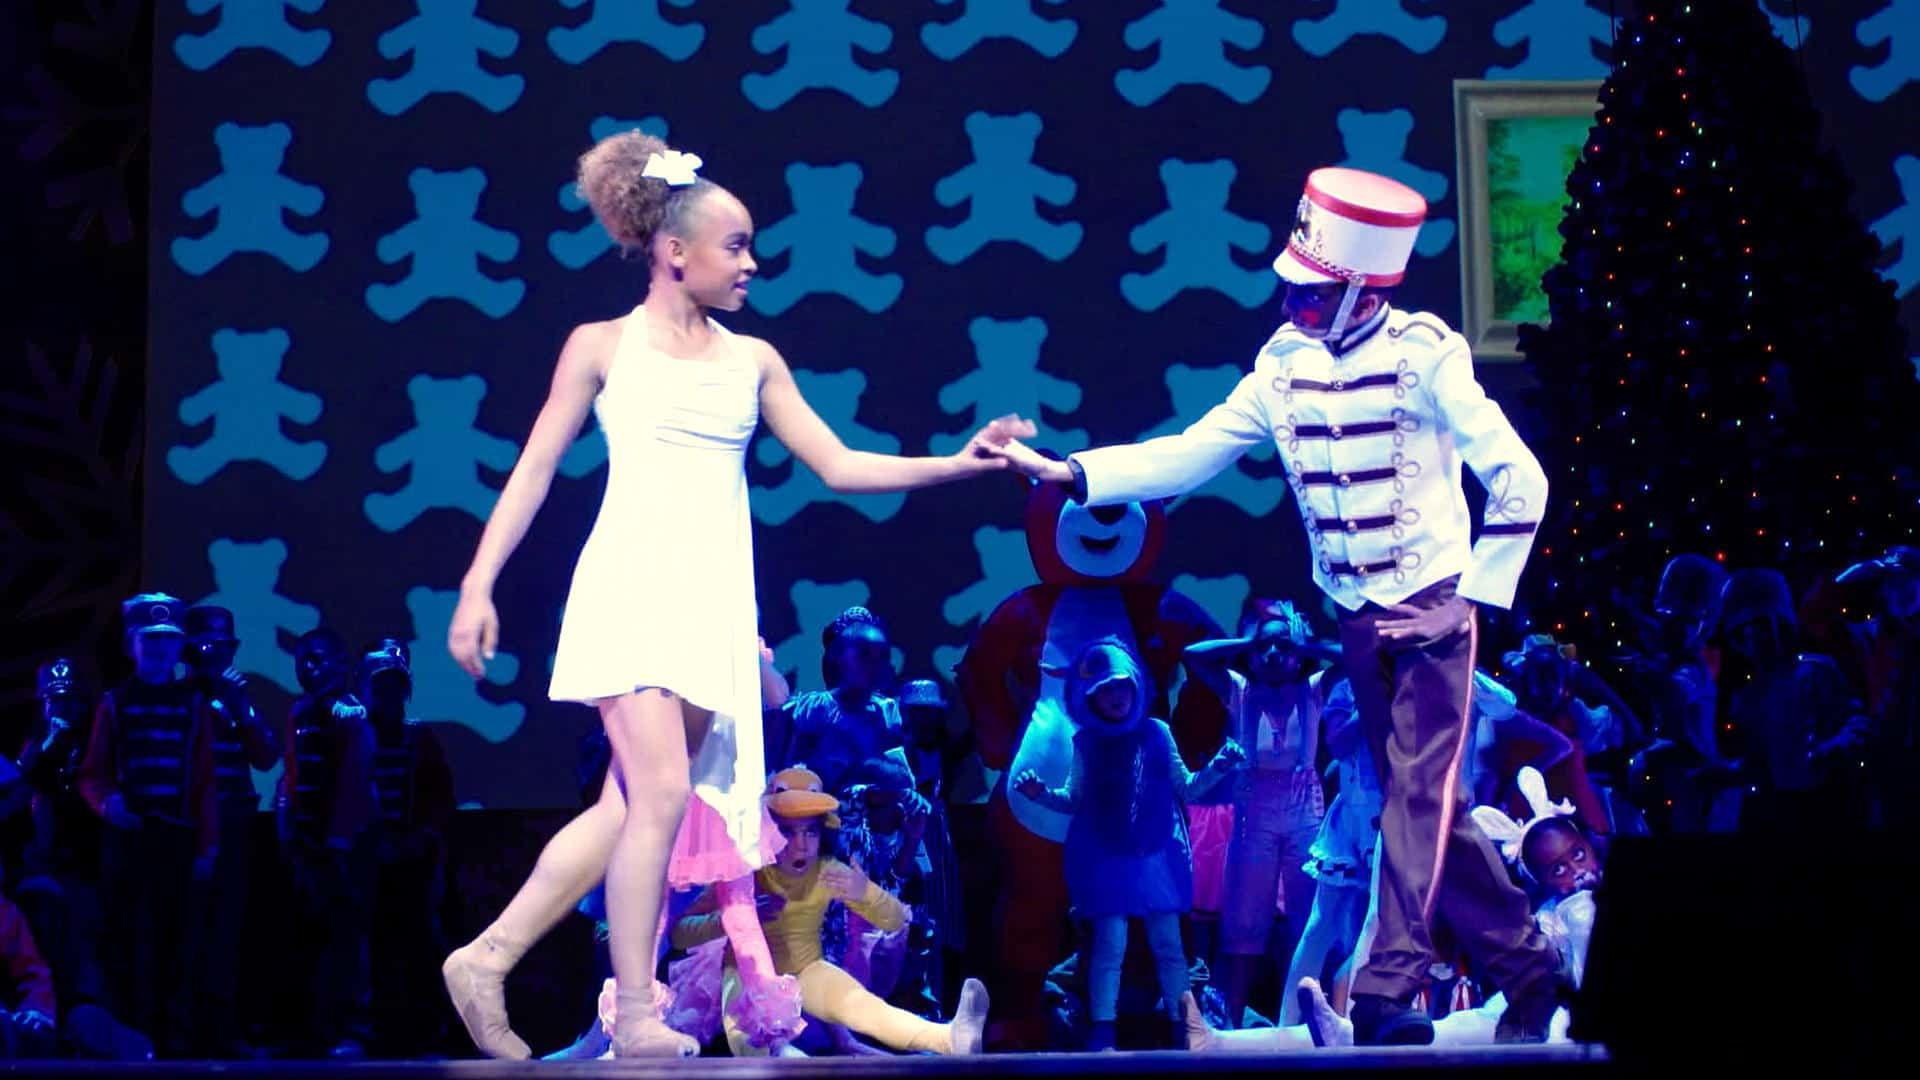 Dancers Kalyn Flowers and Ryan Phuong in Dance Dreams: Hot Chocolate Nutcracker. c. Courtesy of Netflix/2020